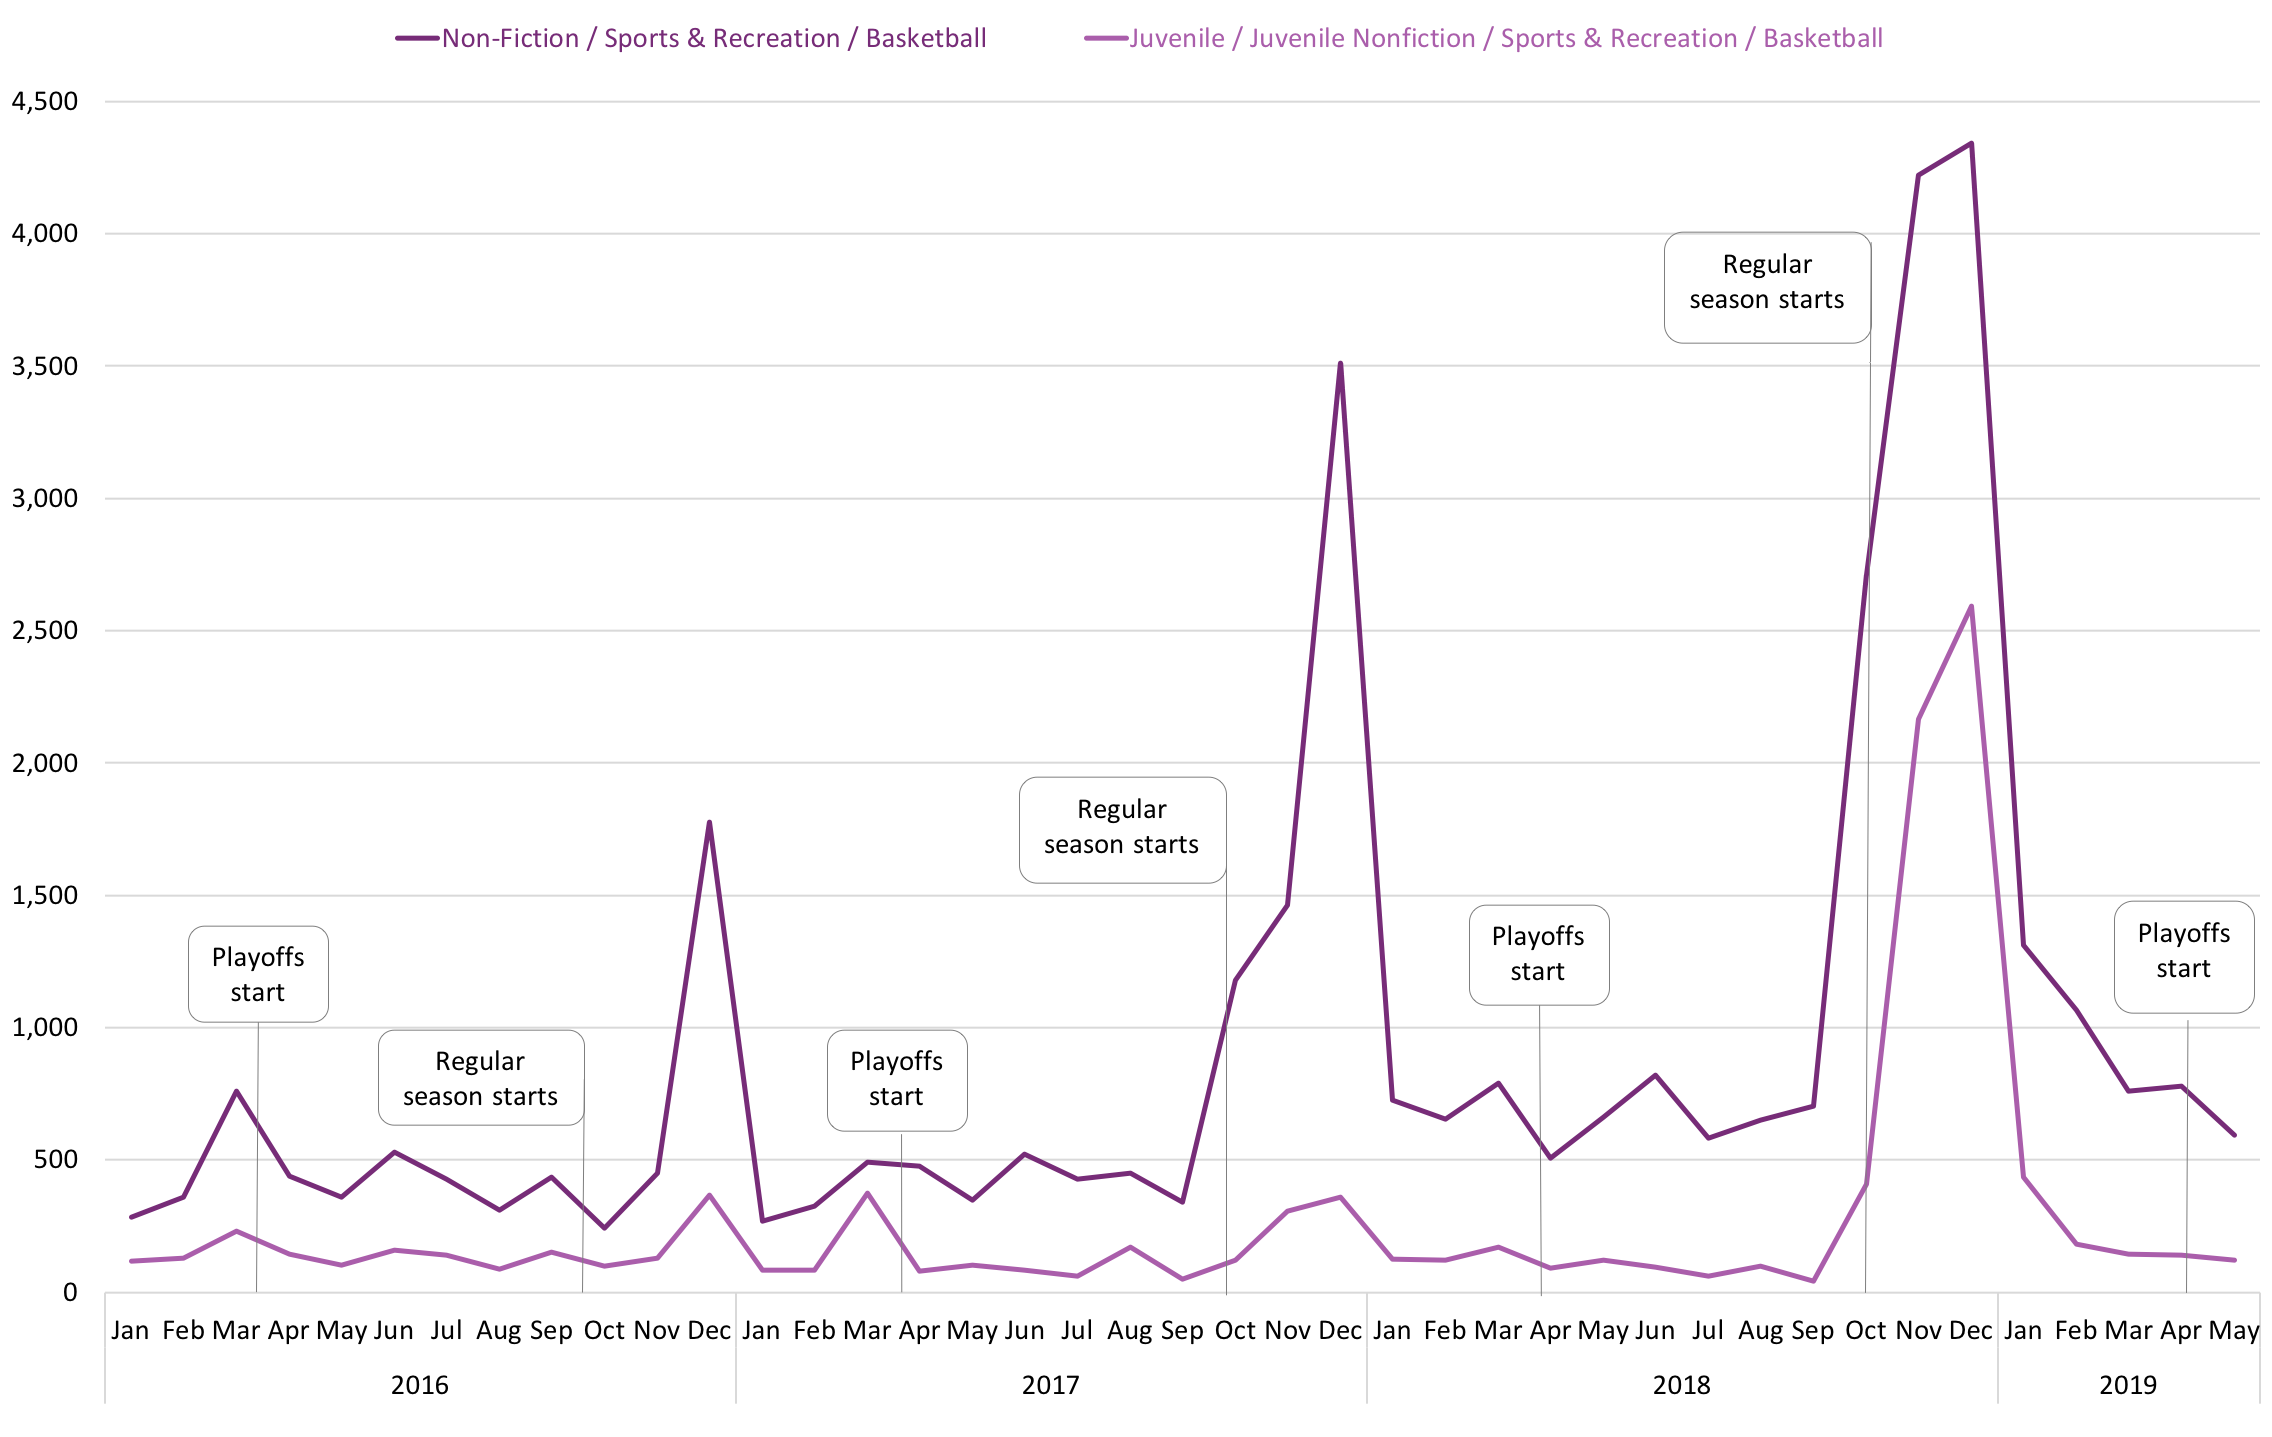 Graph showing  sales of Juvenile Non-Fiction / Sports & Recreation / Basketball and Non-Fiction / Sports & Recreation / Basketball books by month, 2016-2019.